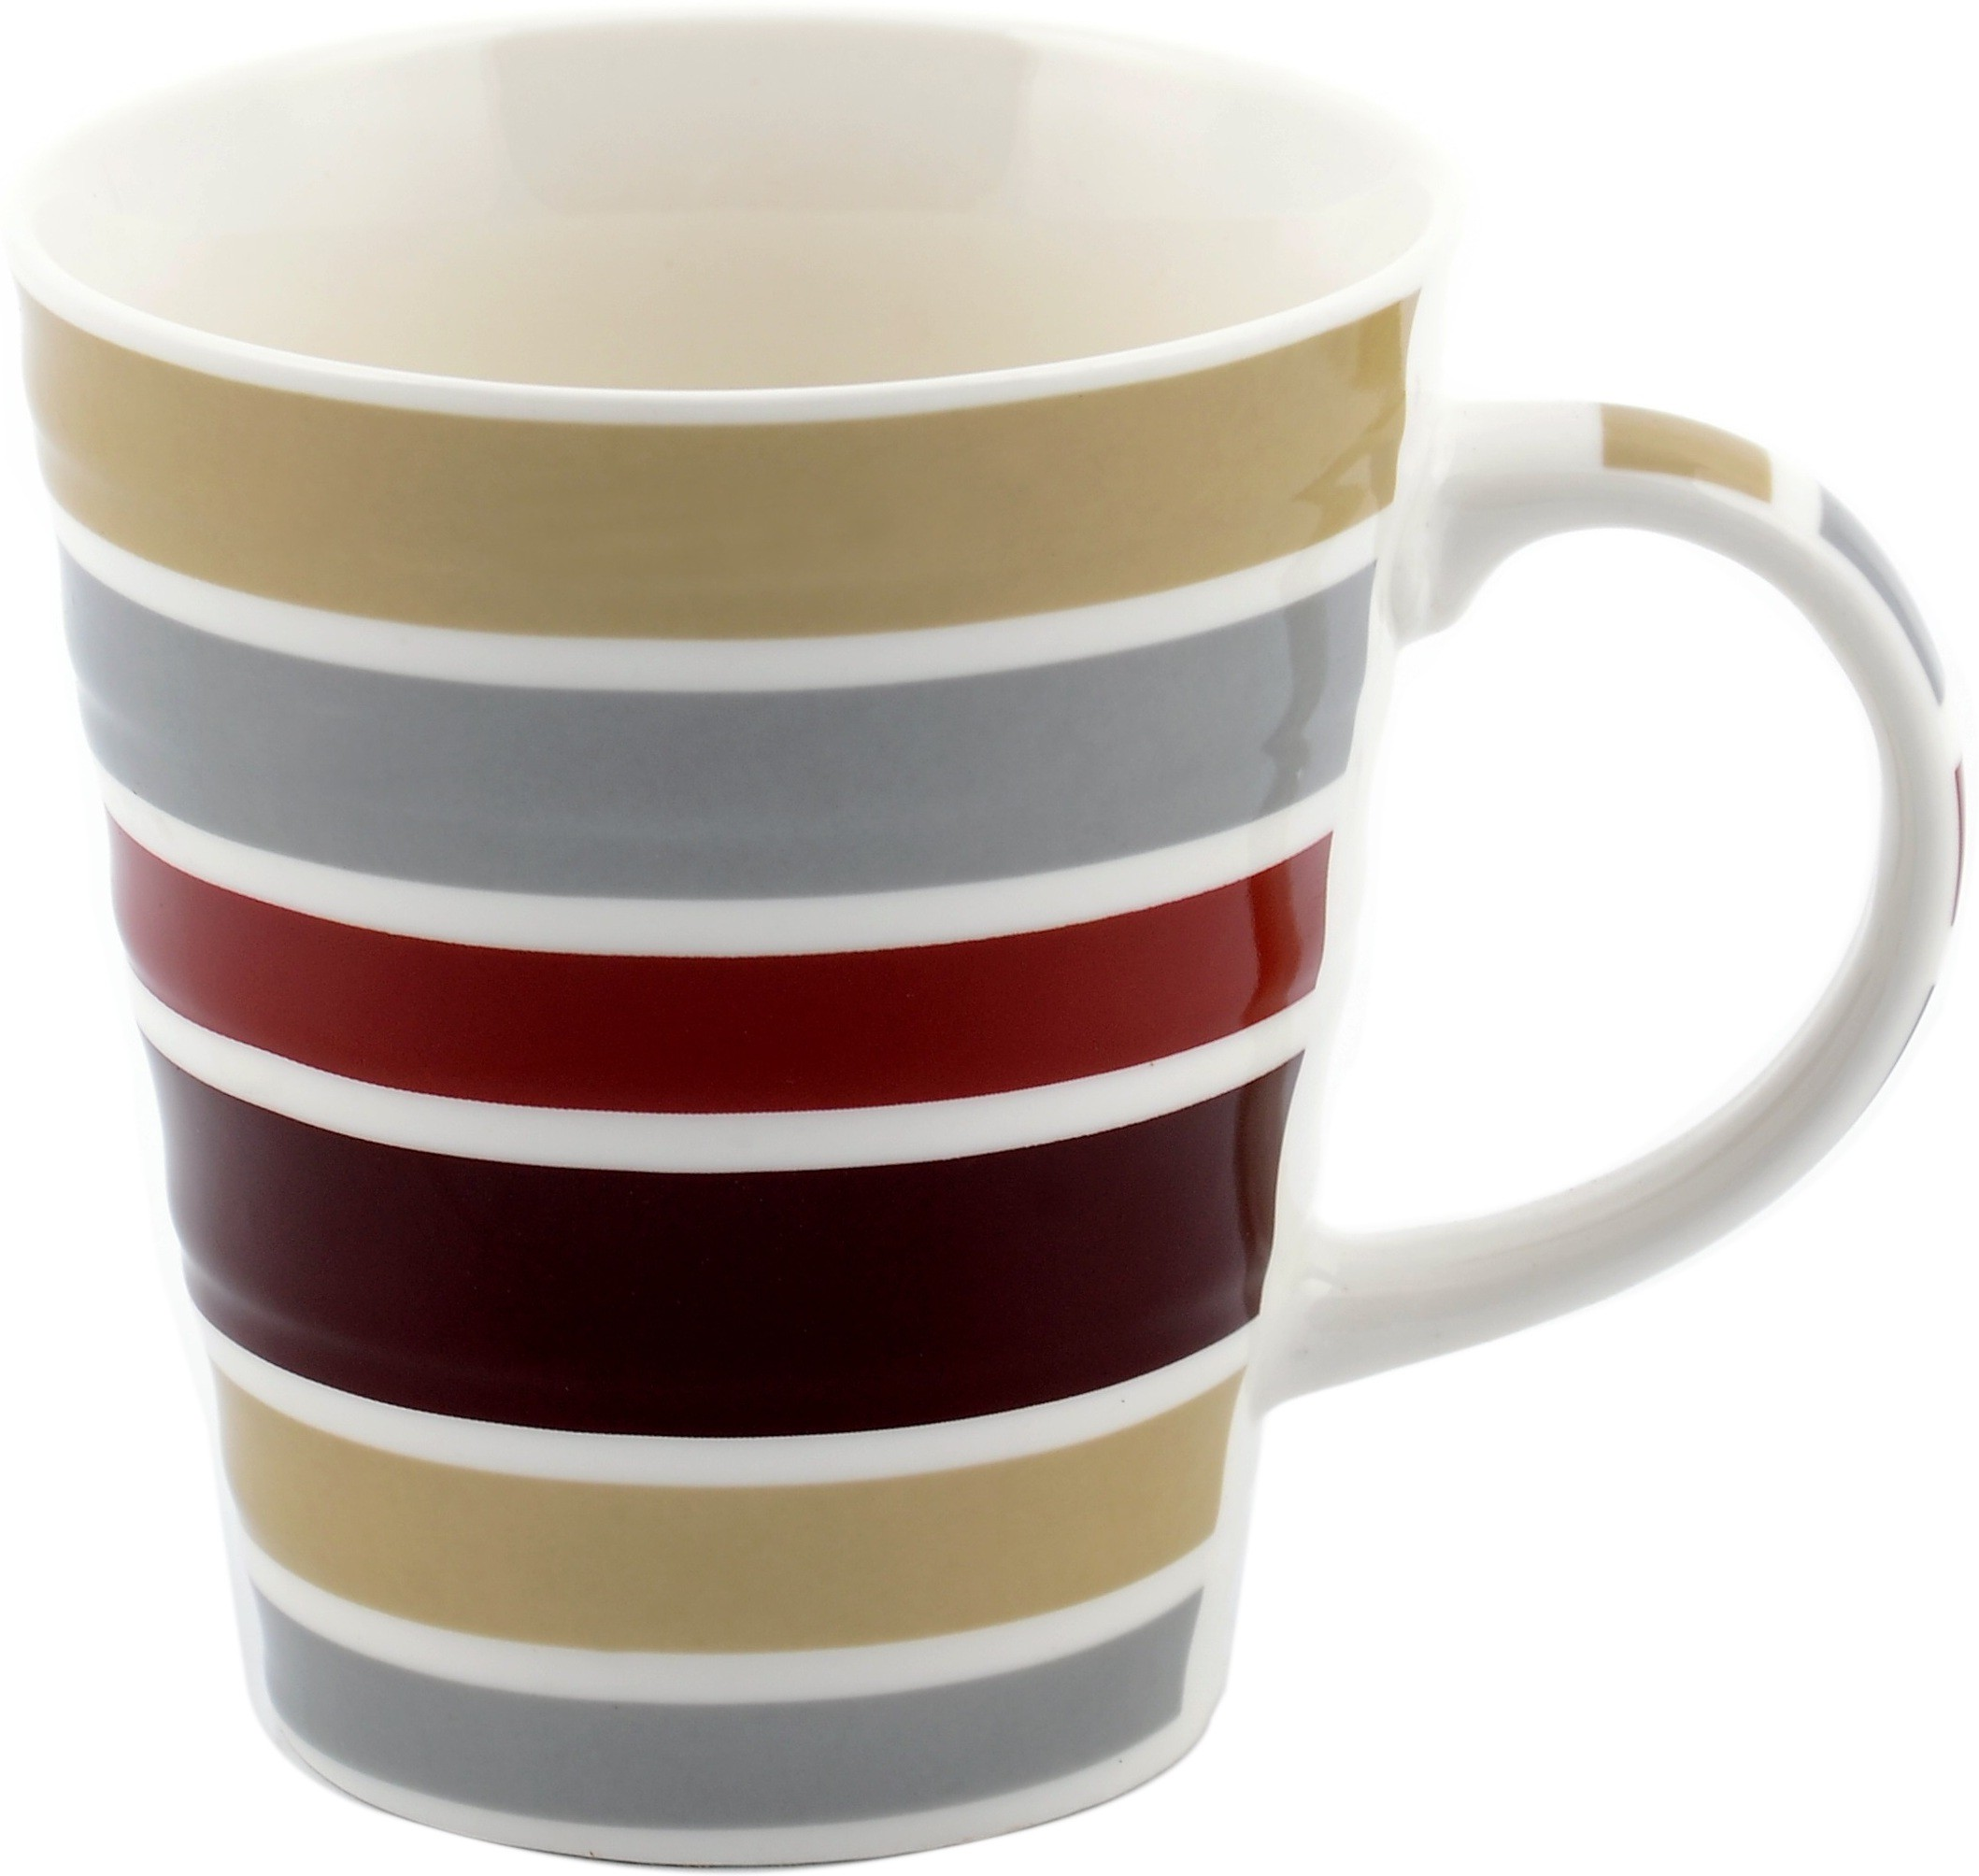 Deals | Under Rs.299 Ceramic Coffee Mugs